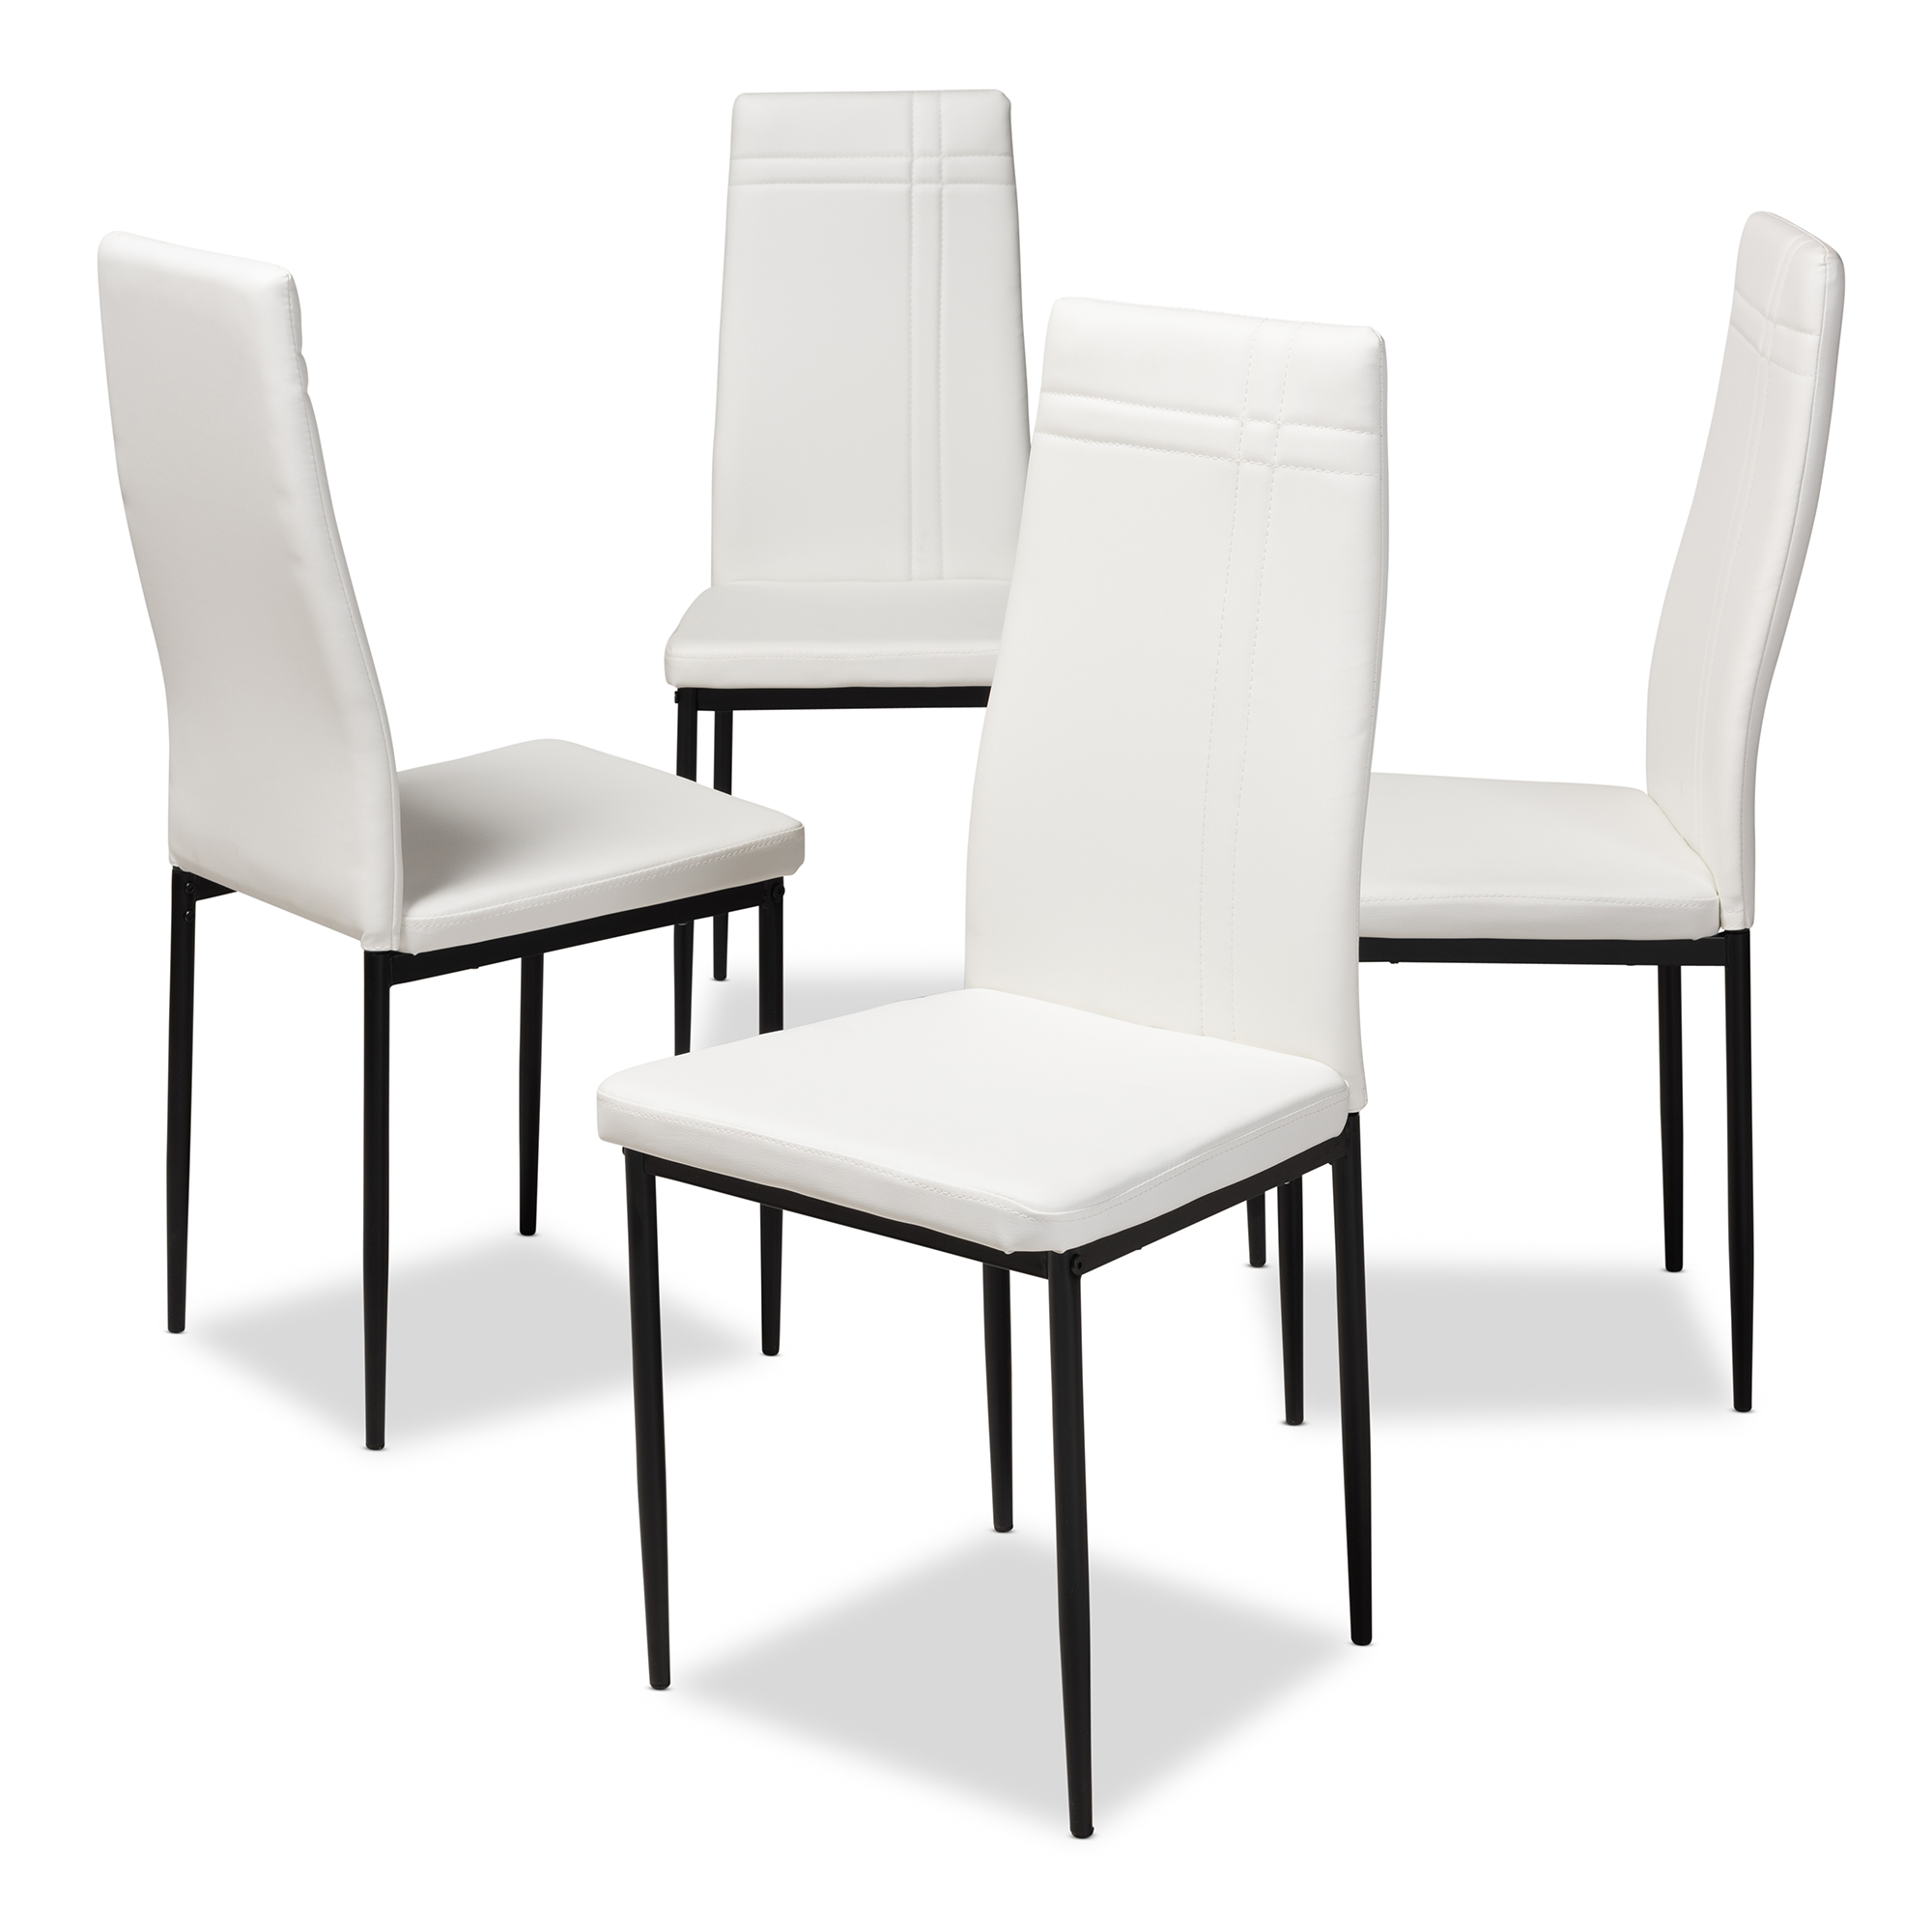 Baxton Studio Matiese Modern And Contemporary White Faux Leather  Upholstered Dining Chair (Set Of 4 ...